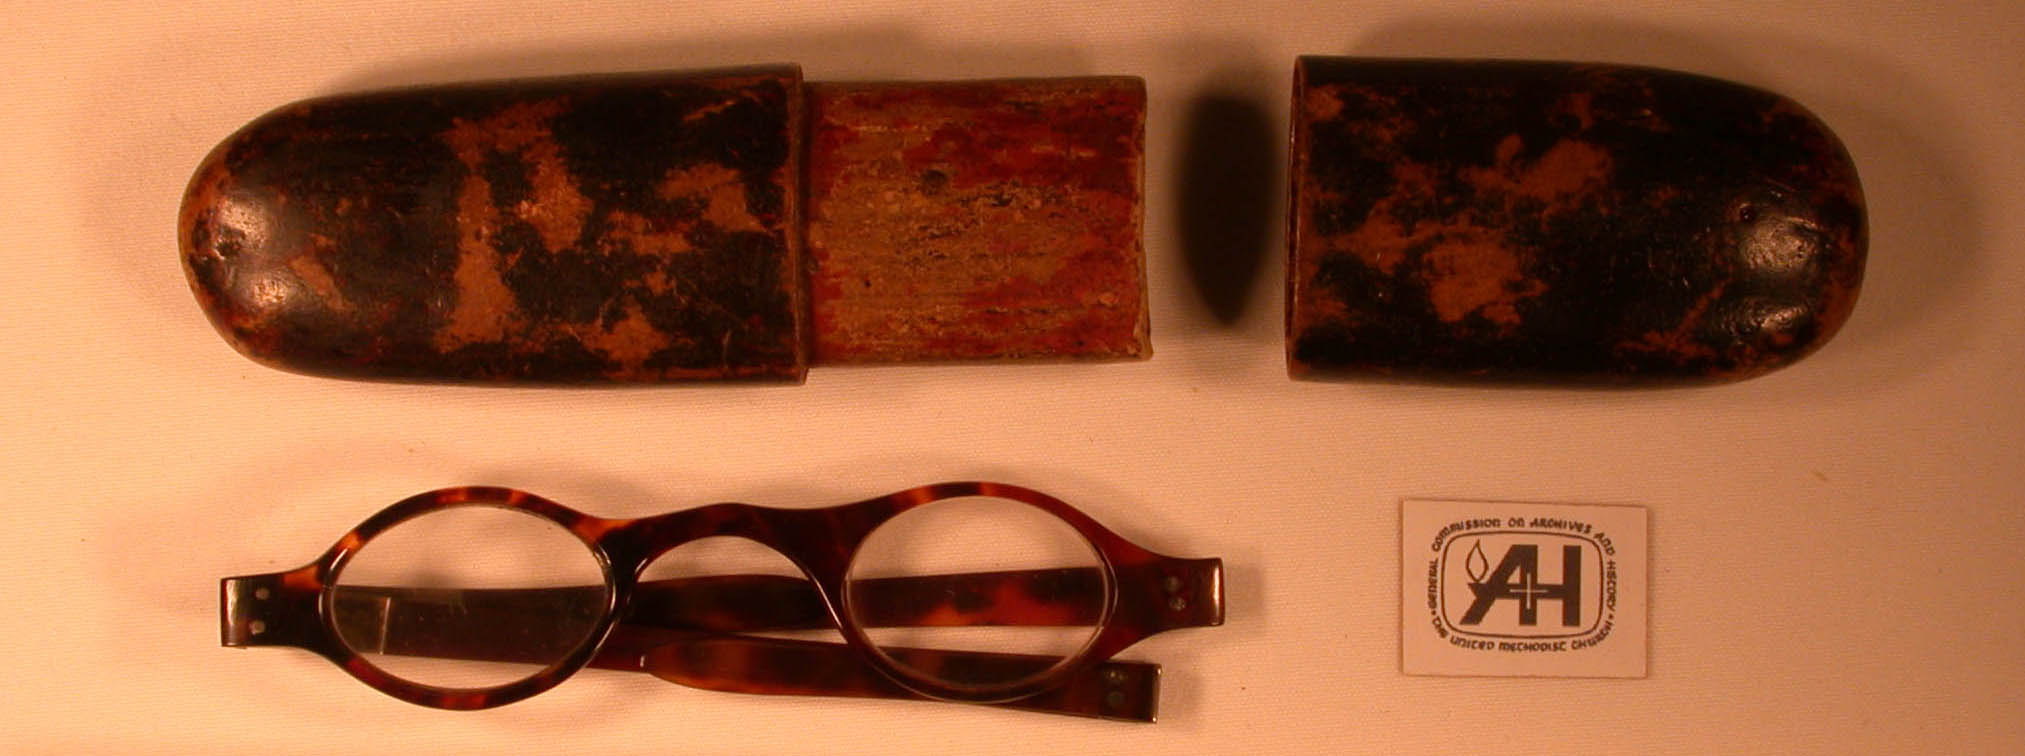 Asbury's glasses and glass case